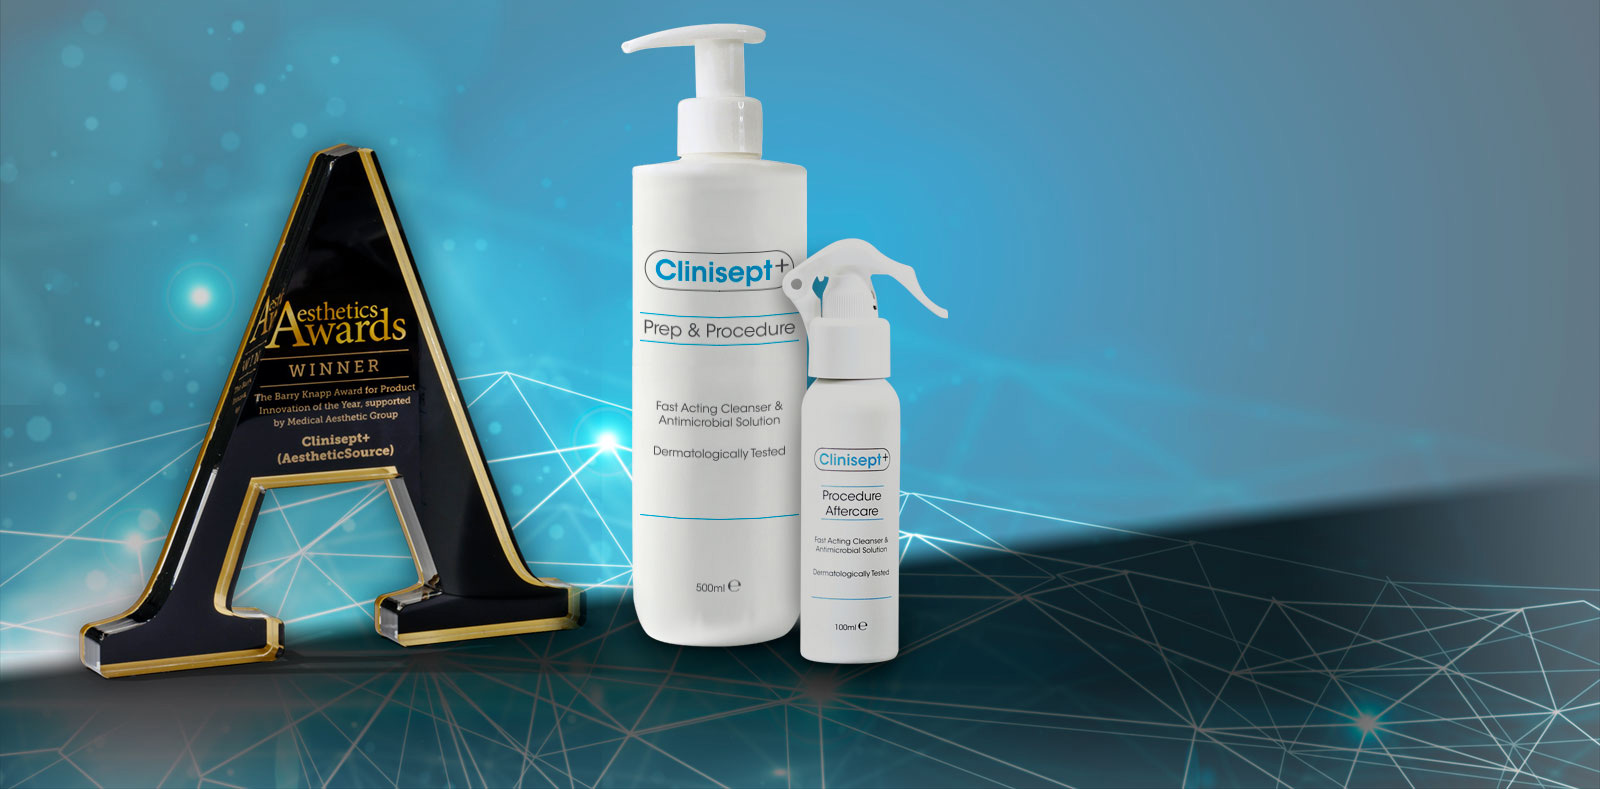 Clinisept+ products with Aesthetics Awards